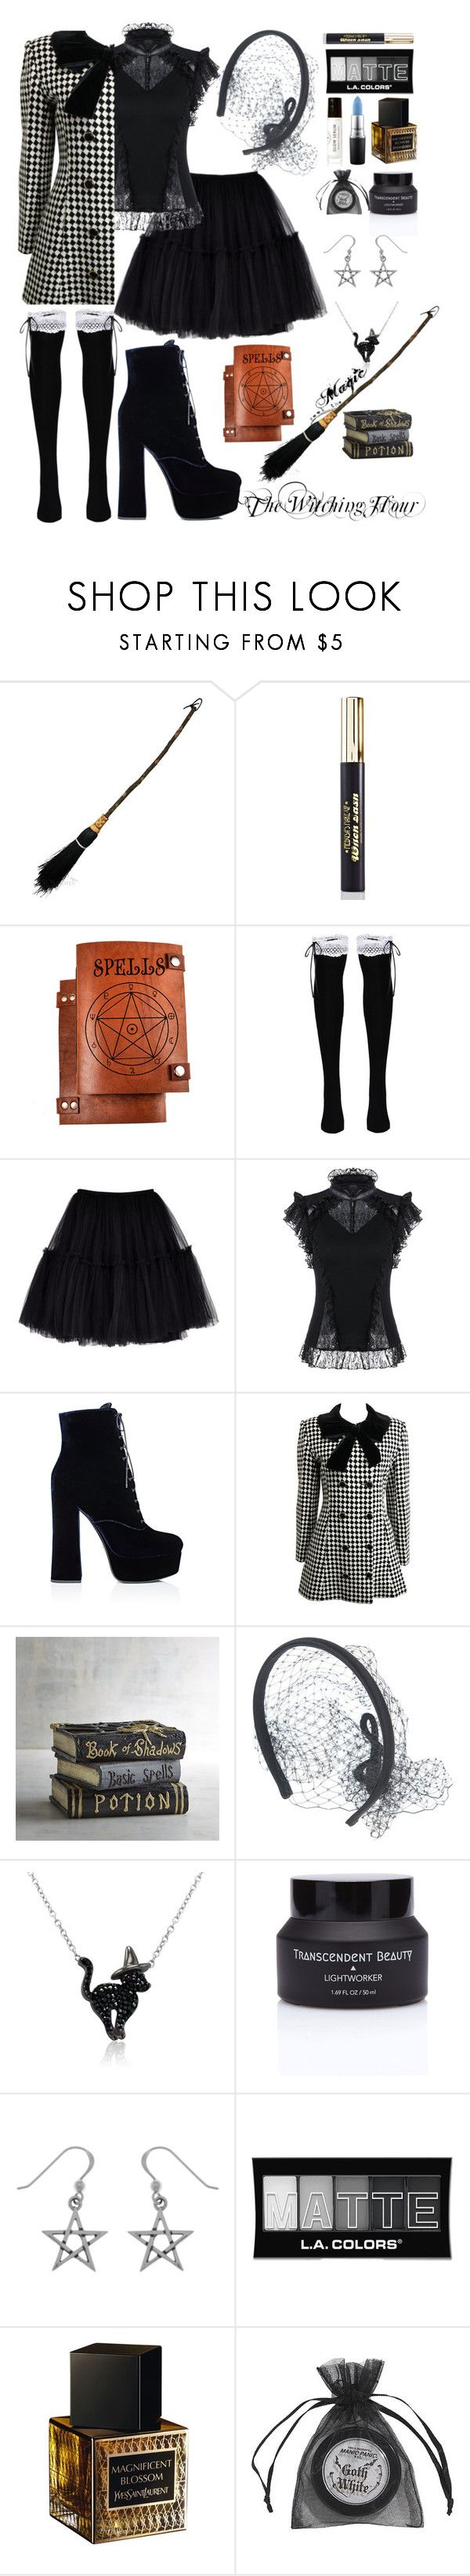 """""""The Witching Hour"""" by shewalksinsilence ❤ liked on Polyvore featuring Medusa's Makeup, Prada, Pier 1 Imports, RED Valentino, Amanda Rose Collection, L.A. Colors, Yves Saint Laurent, Manic Panic NYC, MAC Cosmetics and Birchrose + Co."""